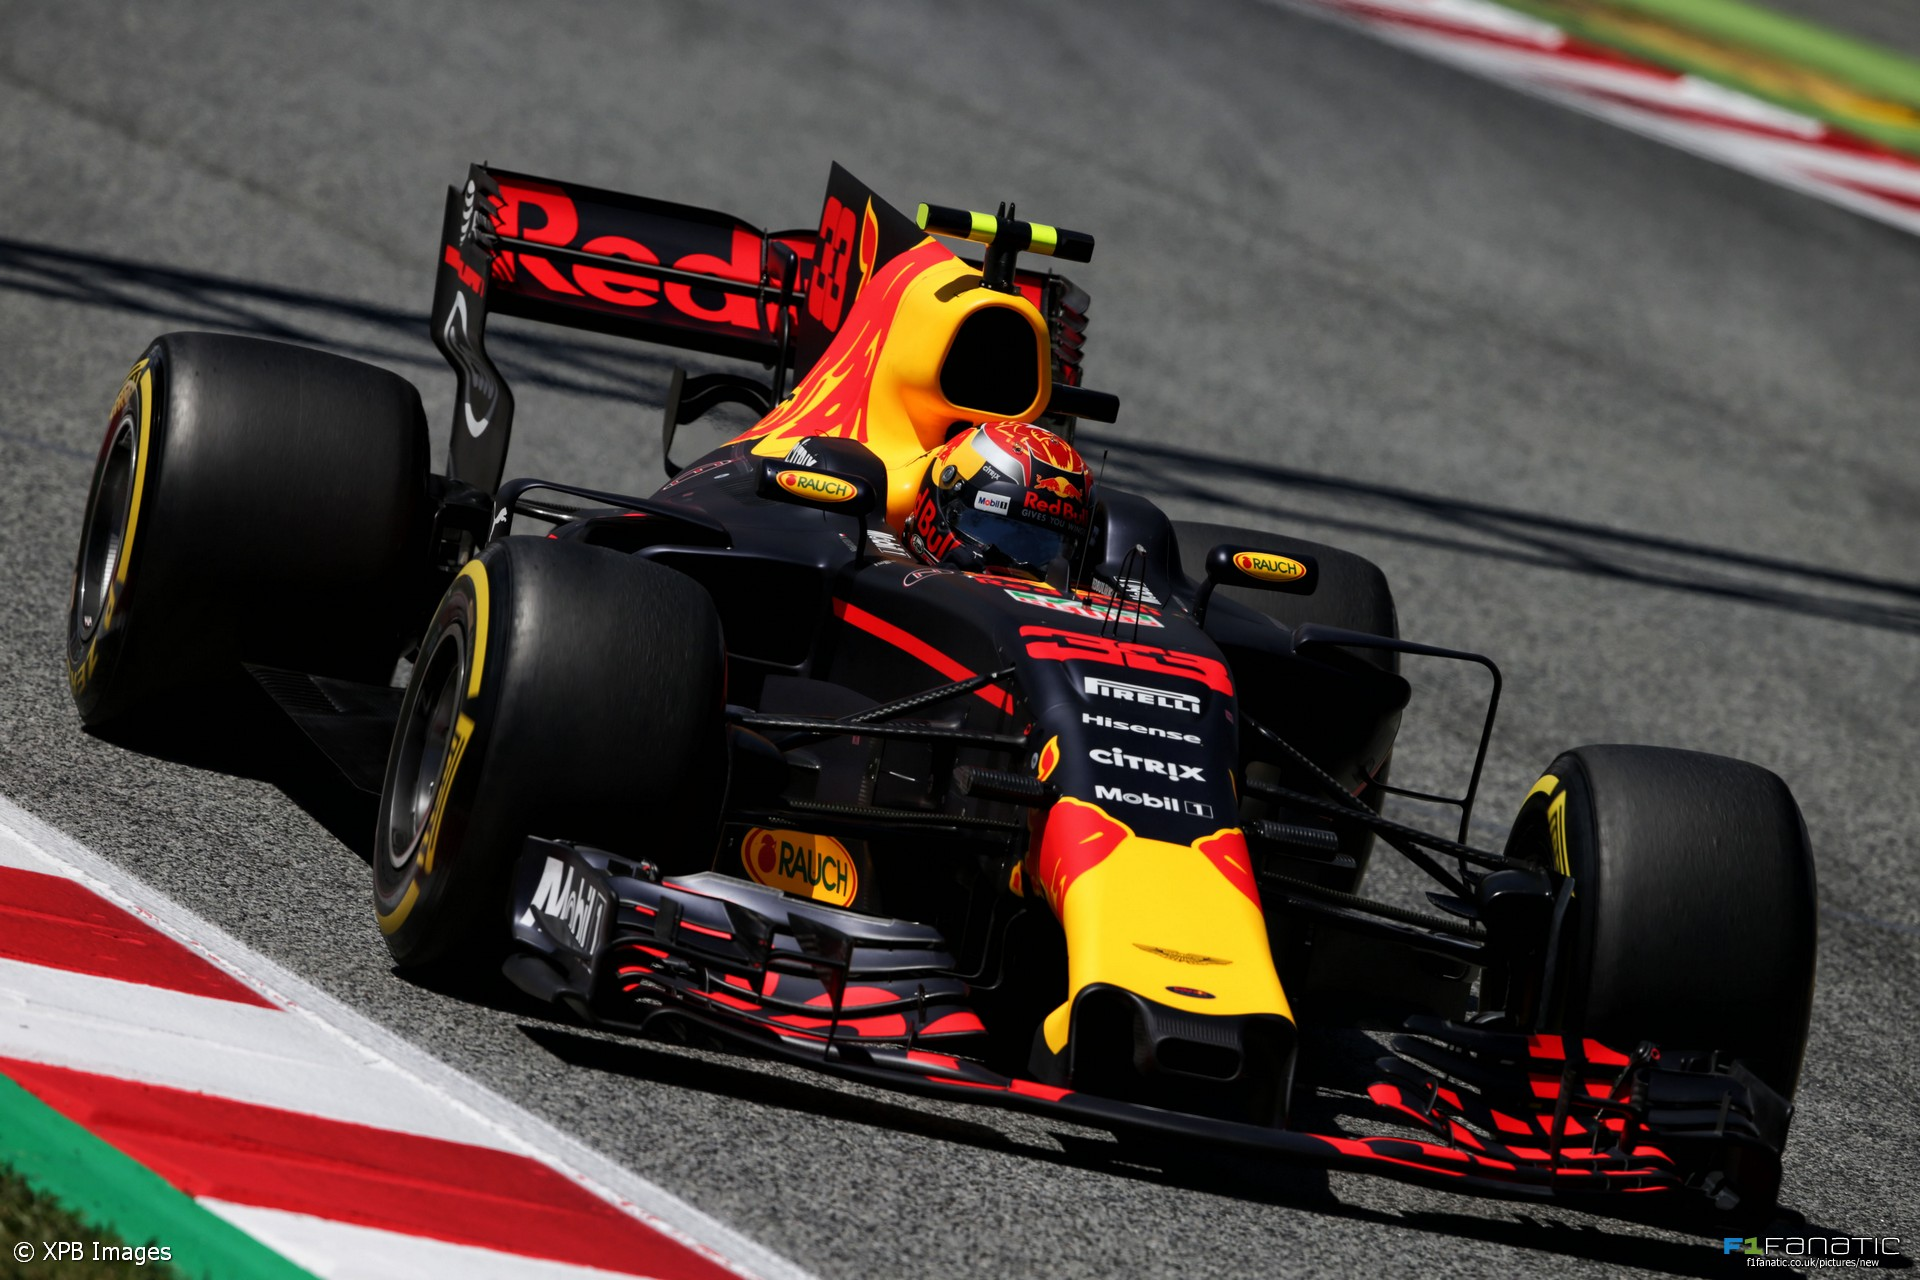 Verstappen Races For Red Bull Racing And Has Had 3 Wins In His Career So Far